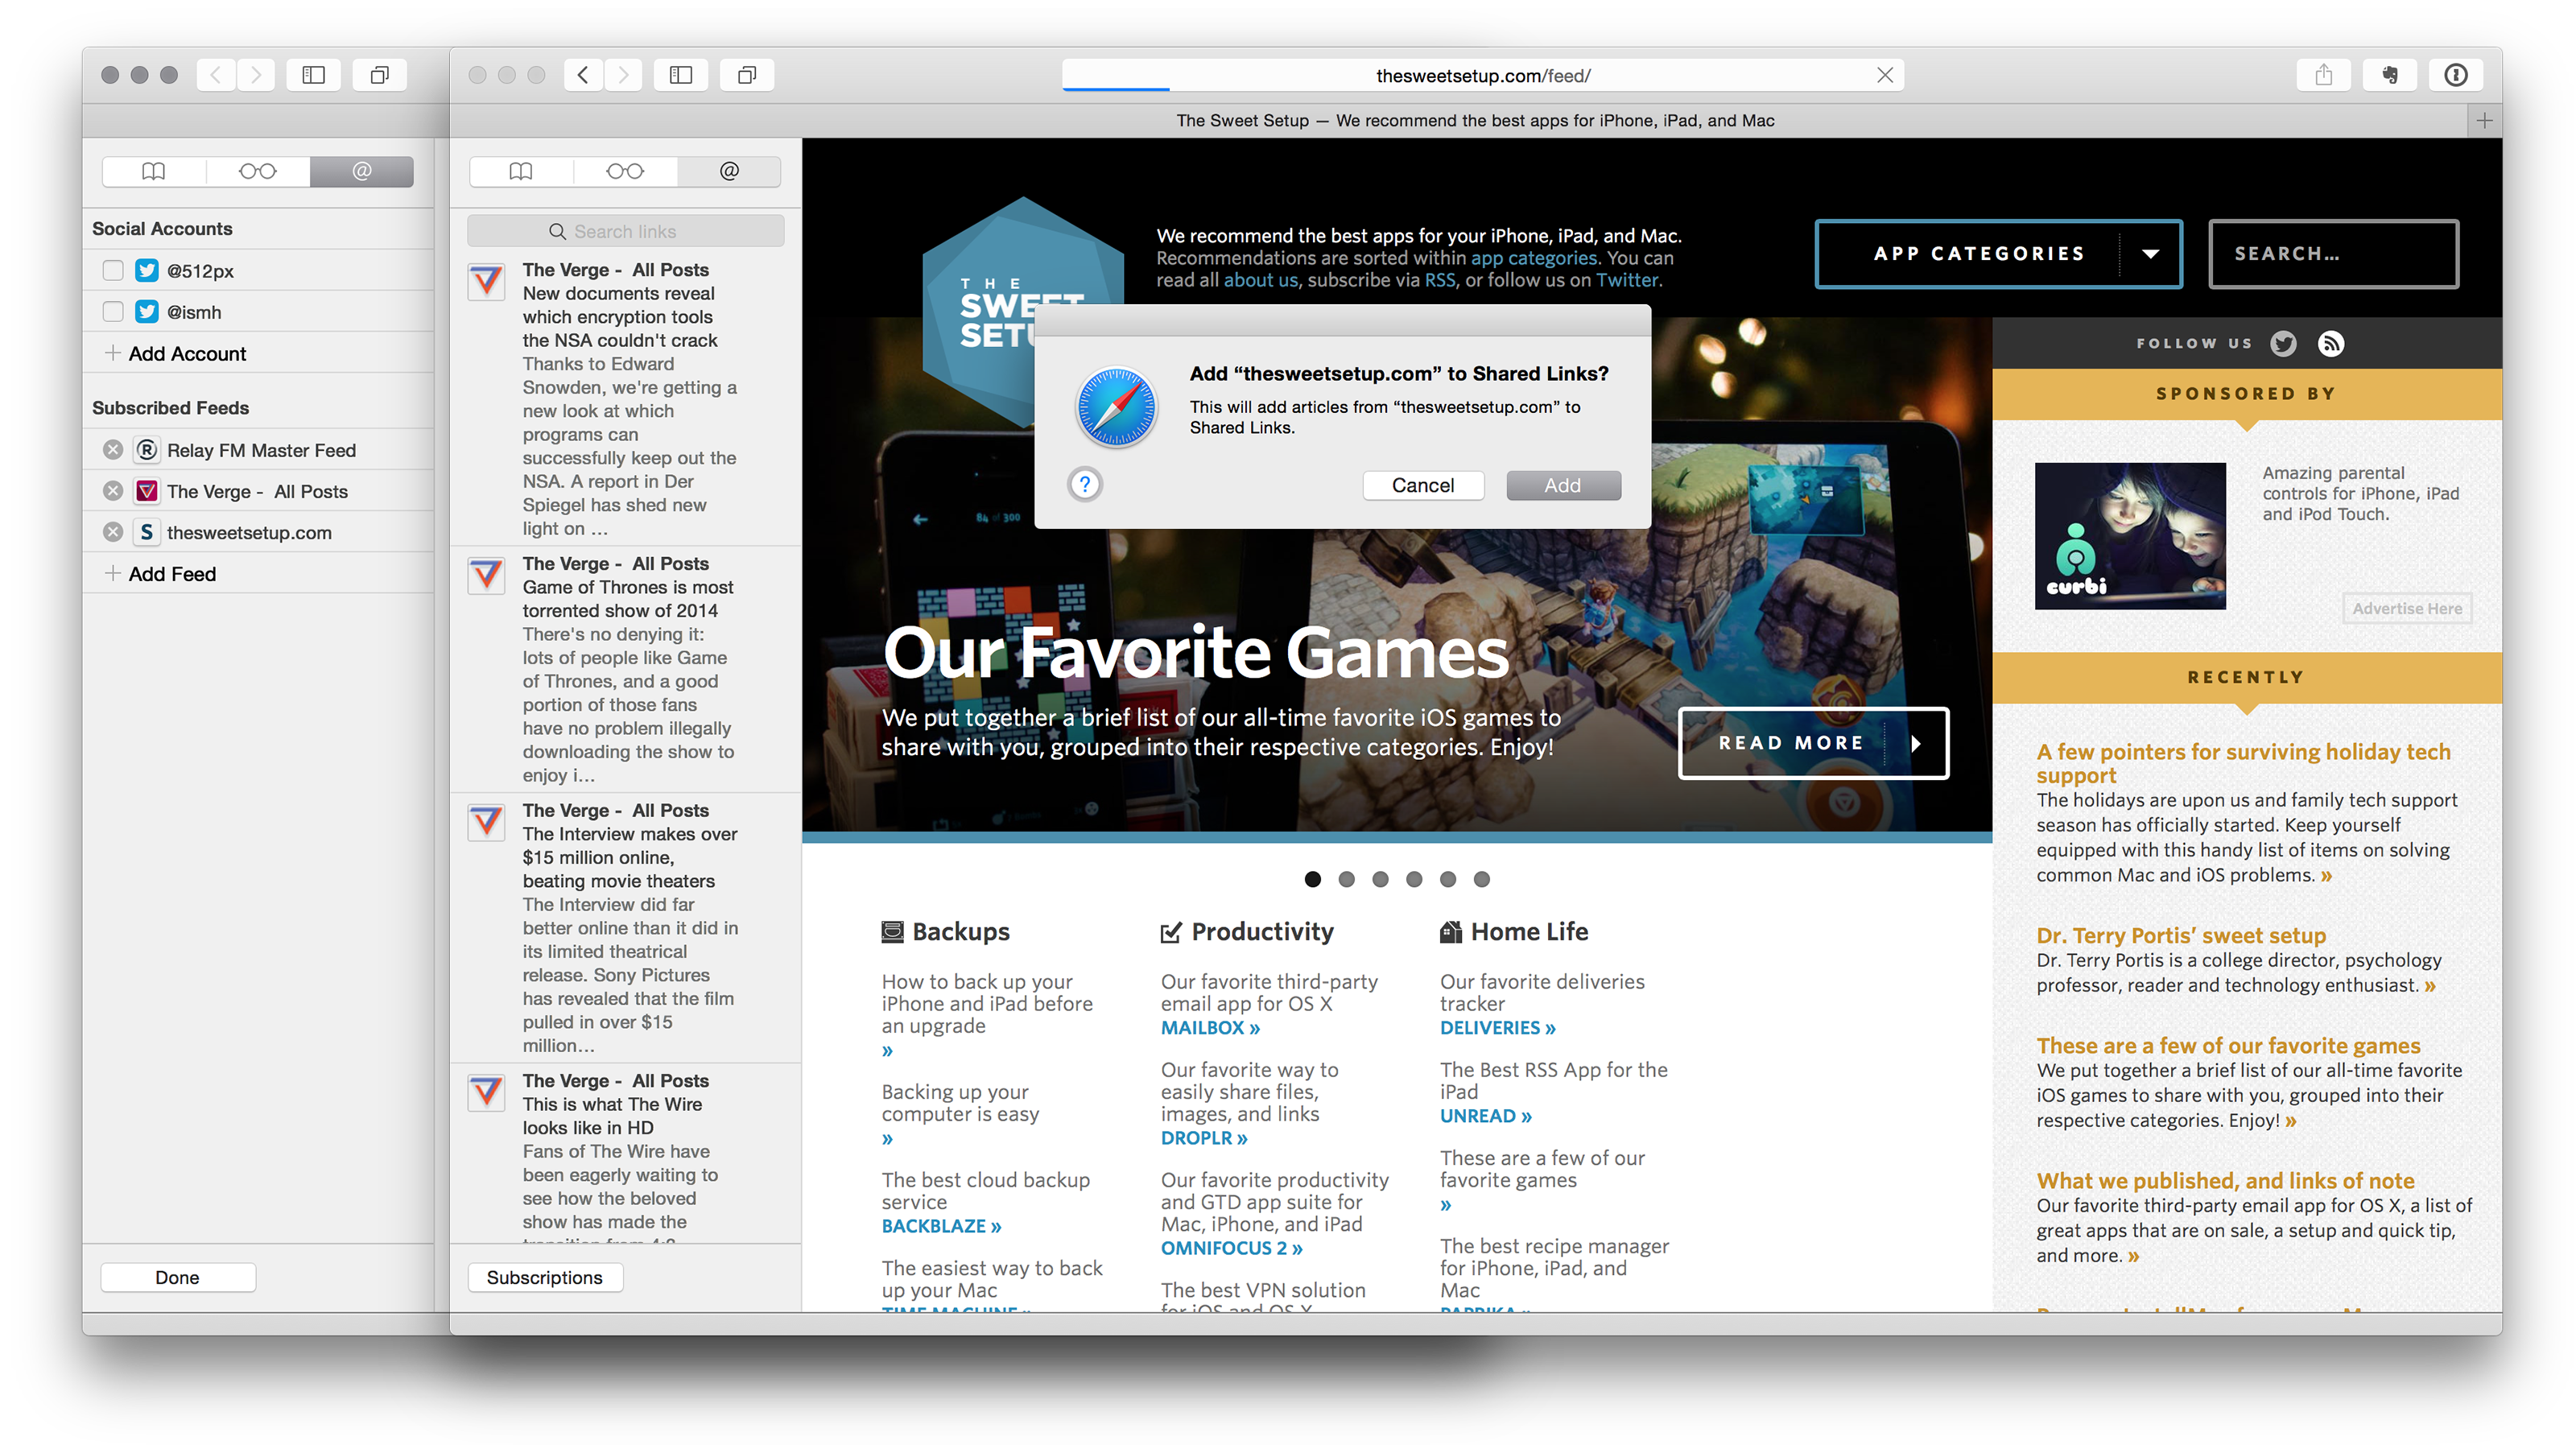 Safari's Shared Links